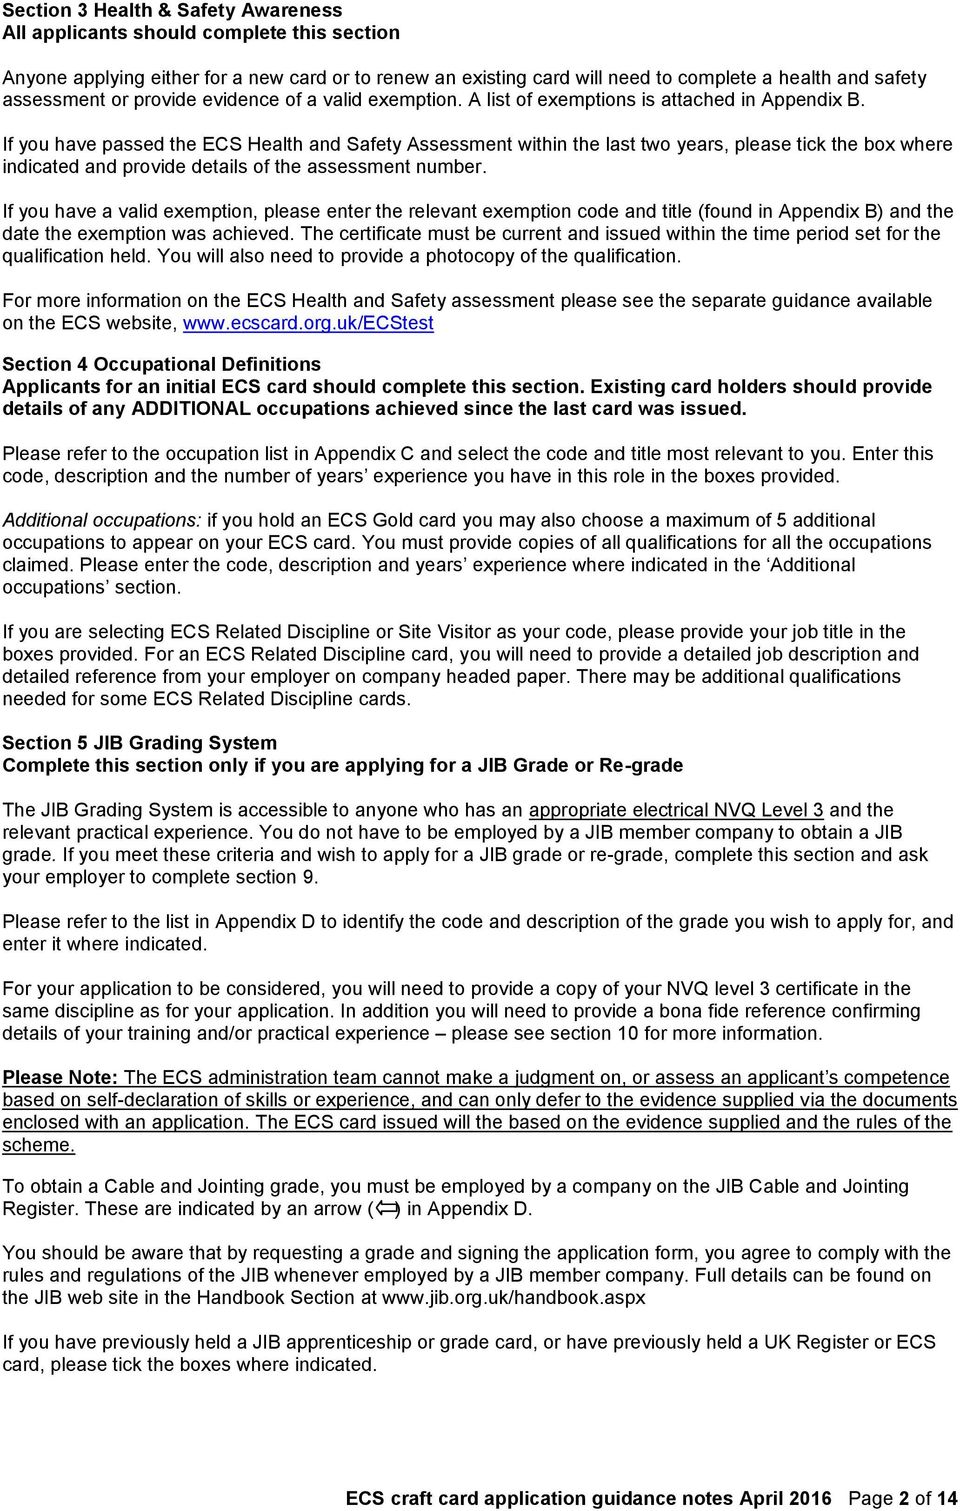 Ecs craft card application guidance notes and appendices pdf if you have passed the ecs health and safety assessment within the last two years fandeluxe Image collections